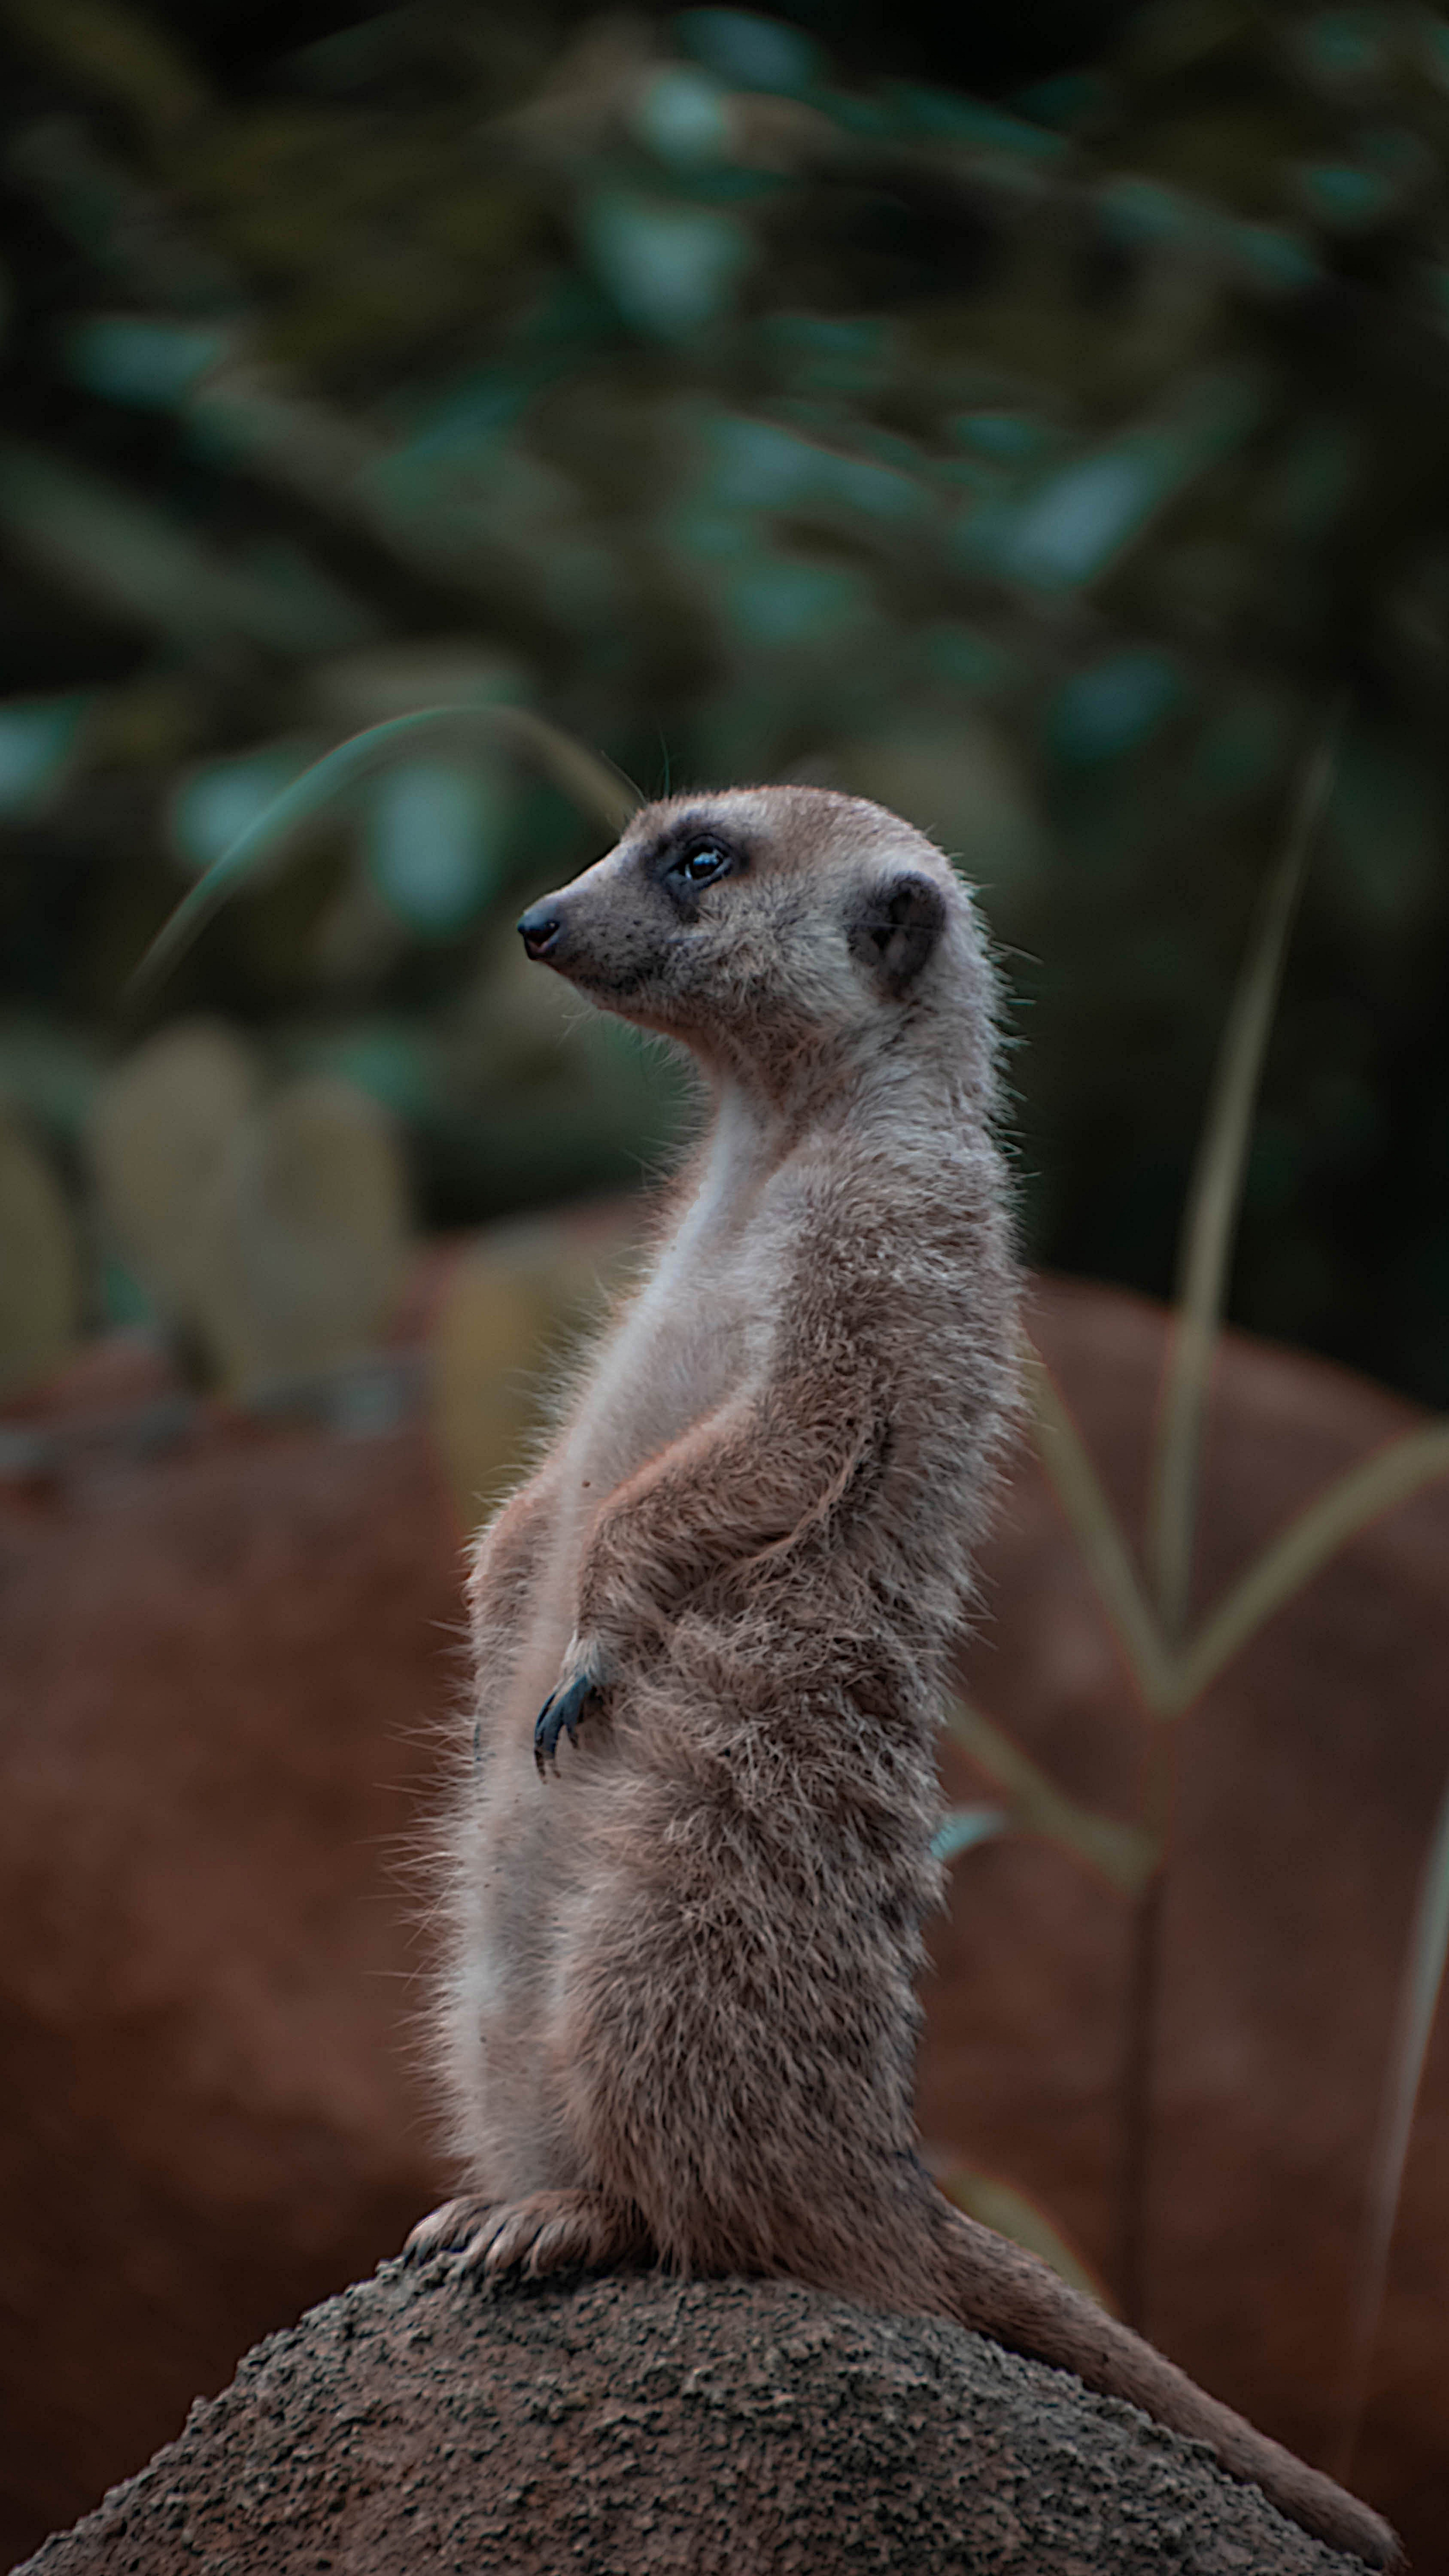 121844 download wallpaper Animals, Meerkat, Surikat, Rodent, Animal, Profile, Rock, Stone screensavers and pictures for free